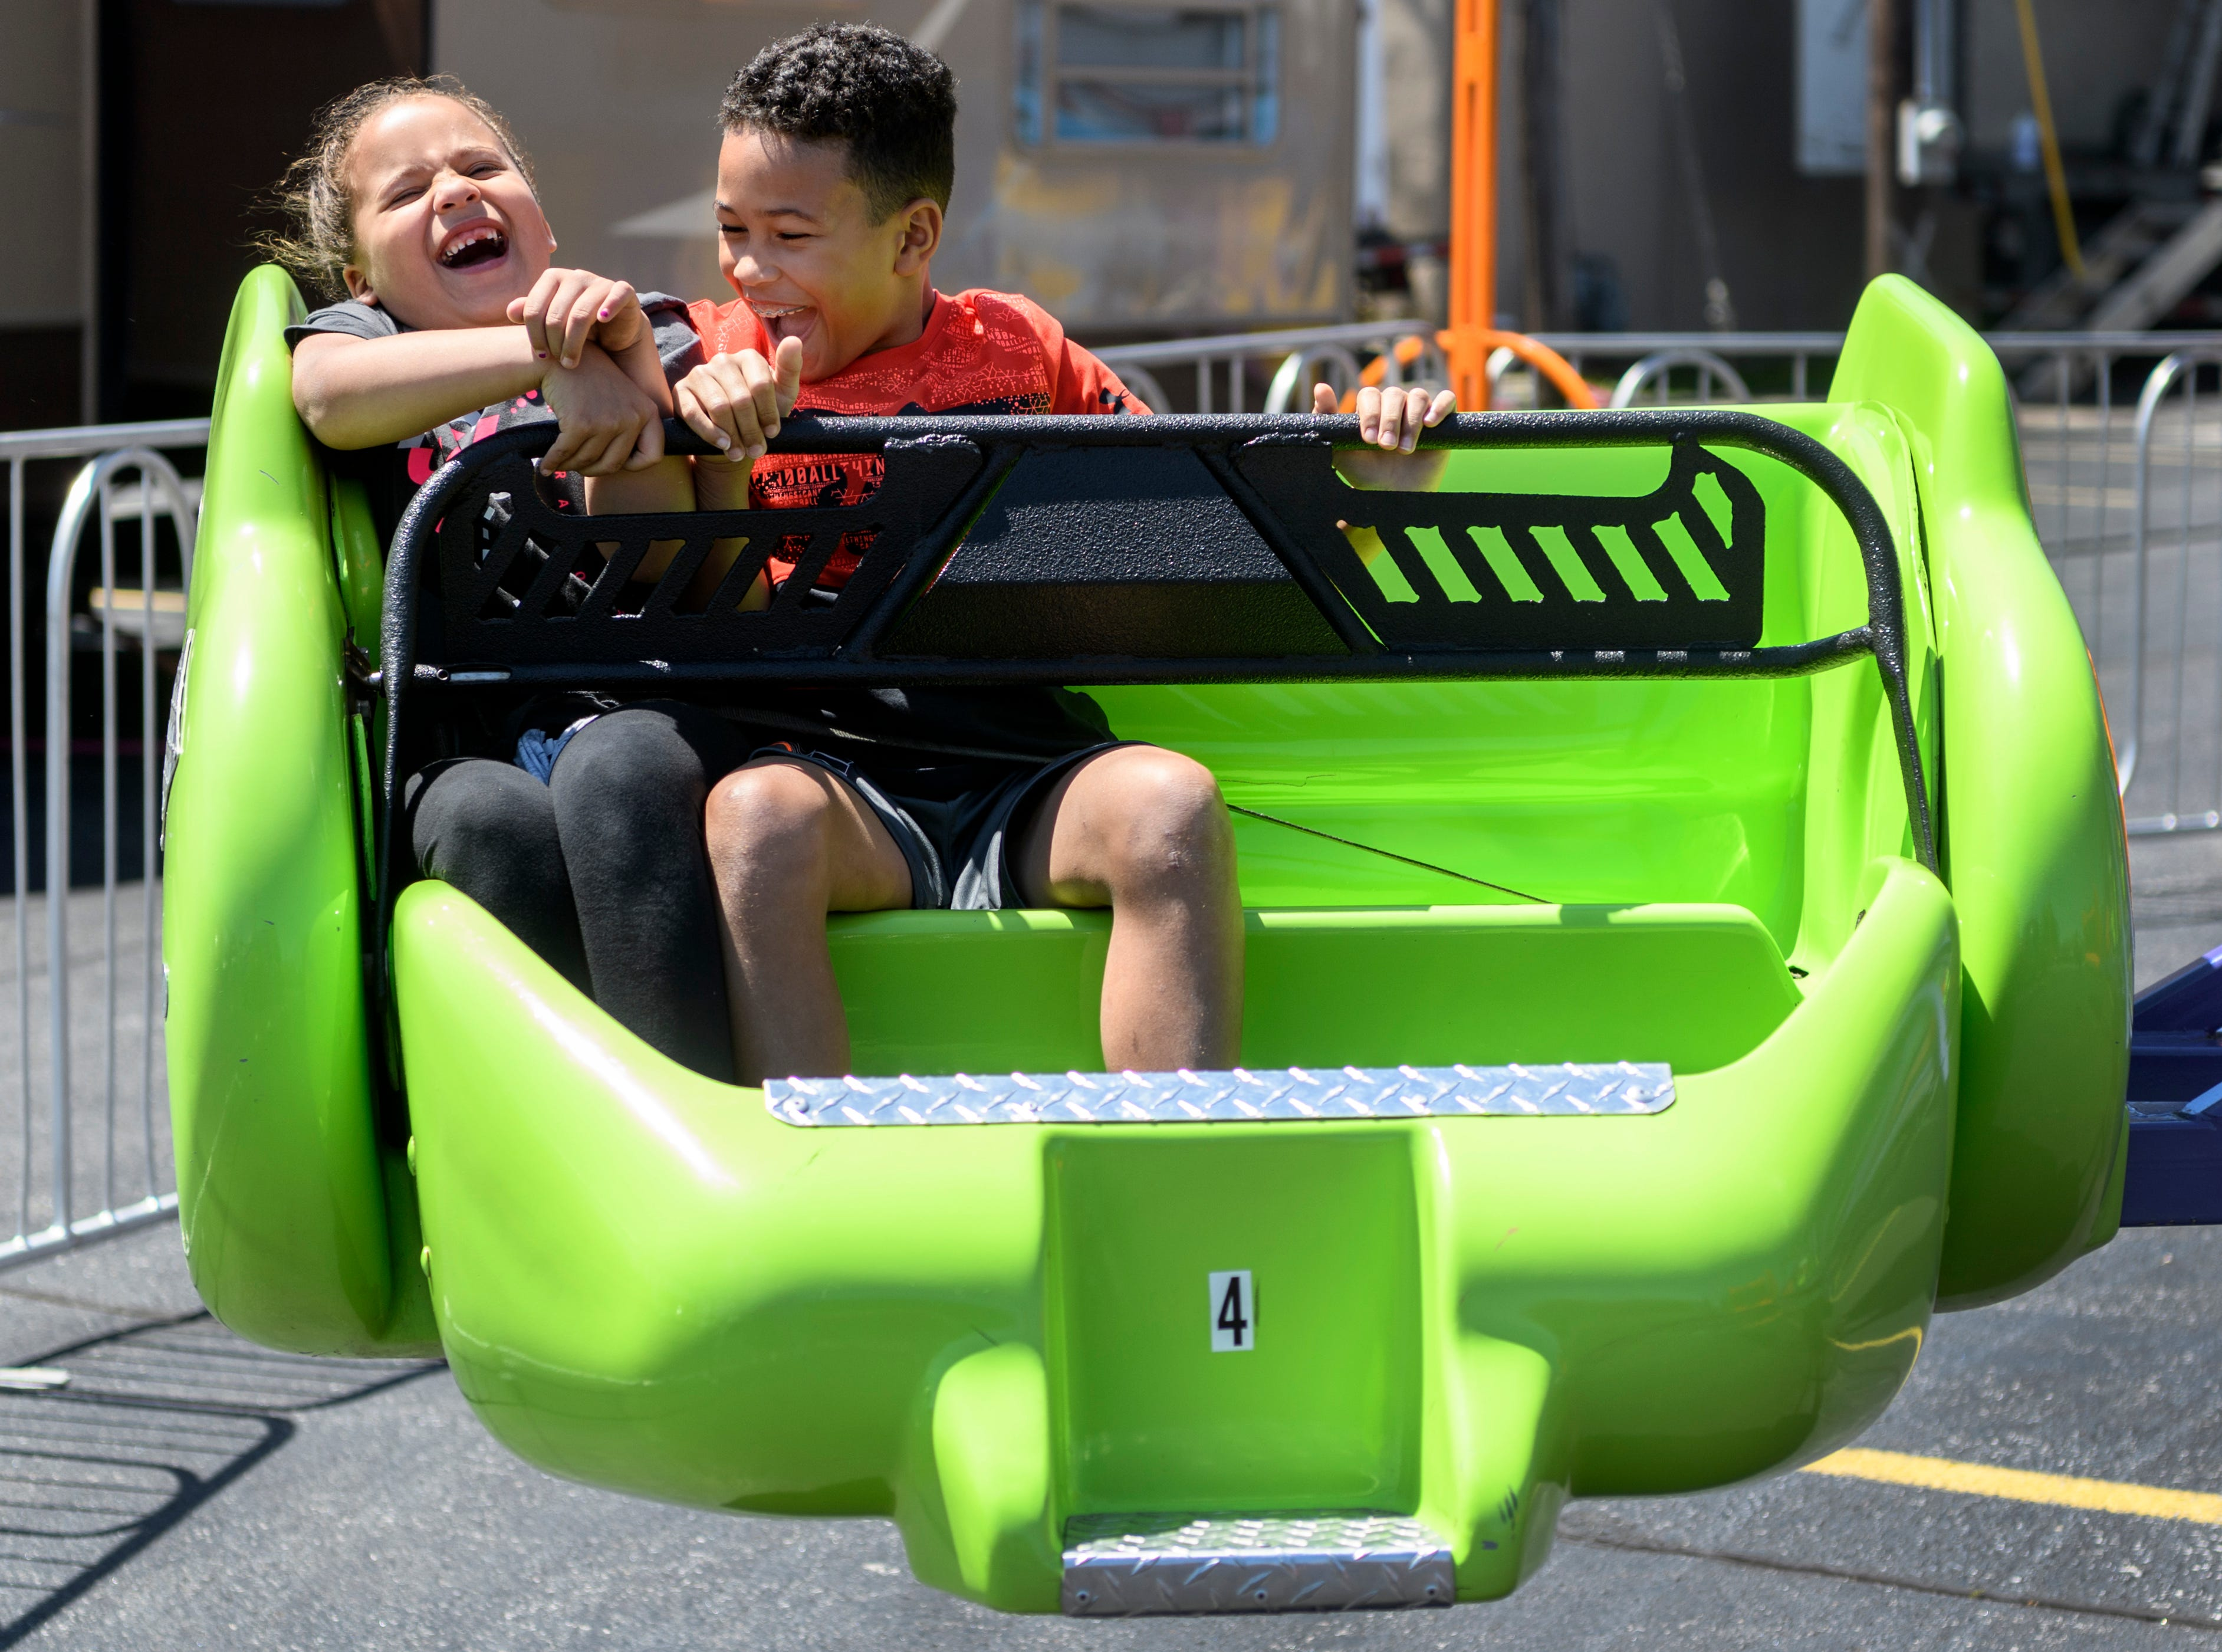 """Olivia Wilson, 6, and Dominic Sheridan, 9, both of Henderson laugh together as they ride the Sizzler during the first day of the 32nd annual Tri-Fest in downtown Henderson, Ky., Friday, April 26, 2019. """"He kept squishing me,"""" Wilson said about Sheridan, when asked if she had fun on the ride."""